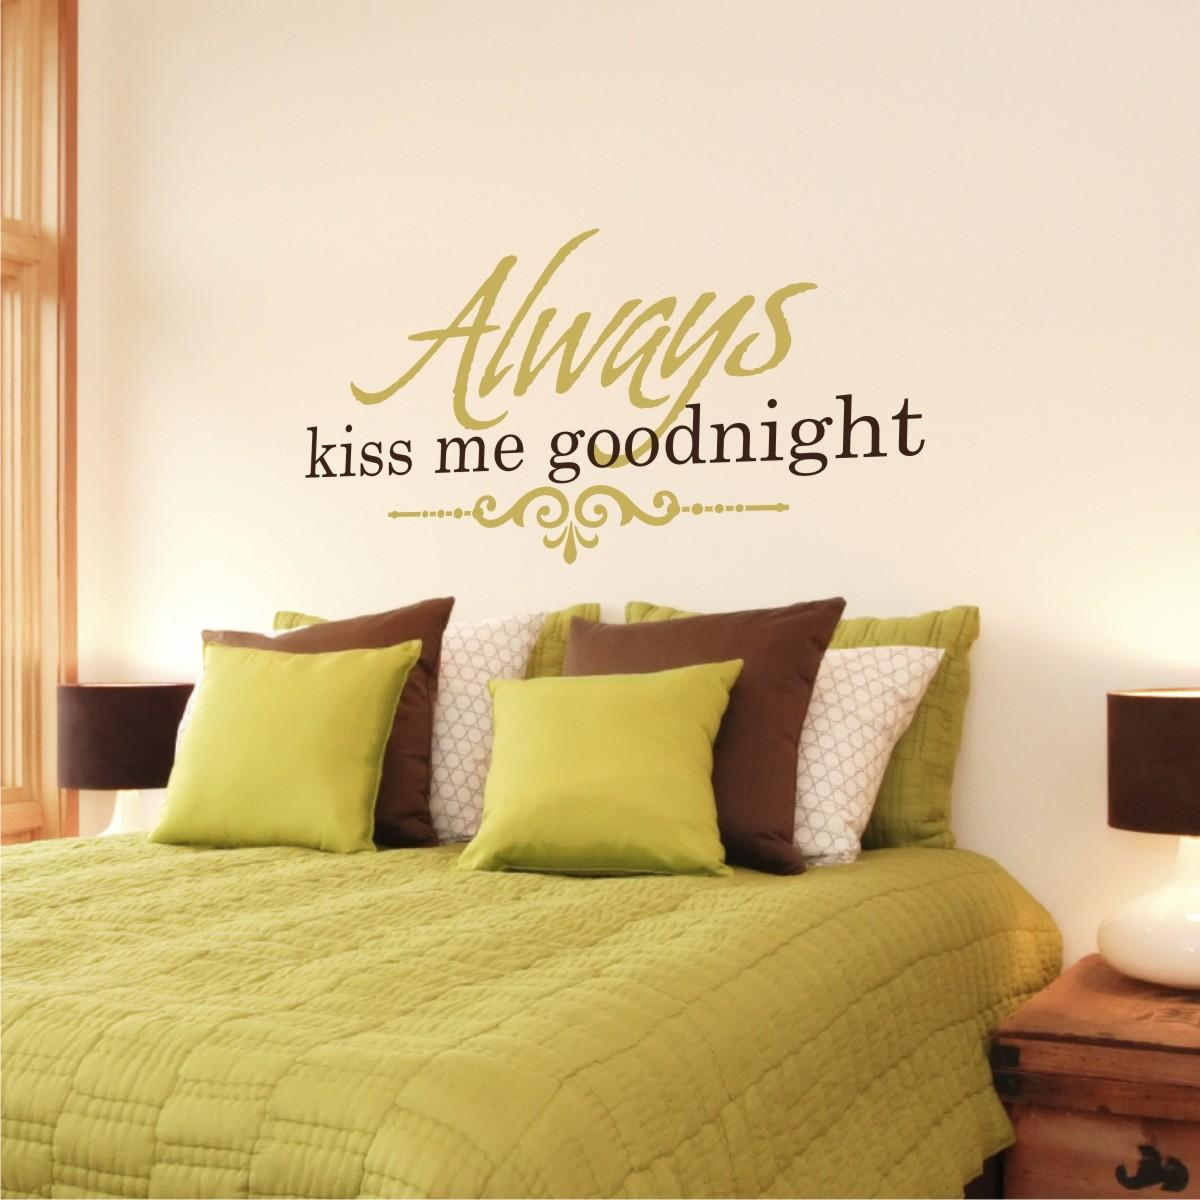 Always Say Goodnight Quotes: Always Kiss Me Goodnight Almond Wall Quotes™ Decal